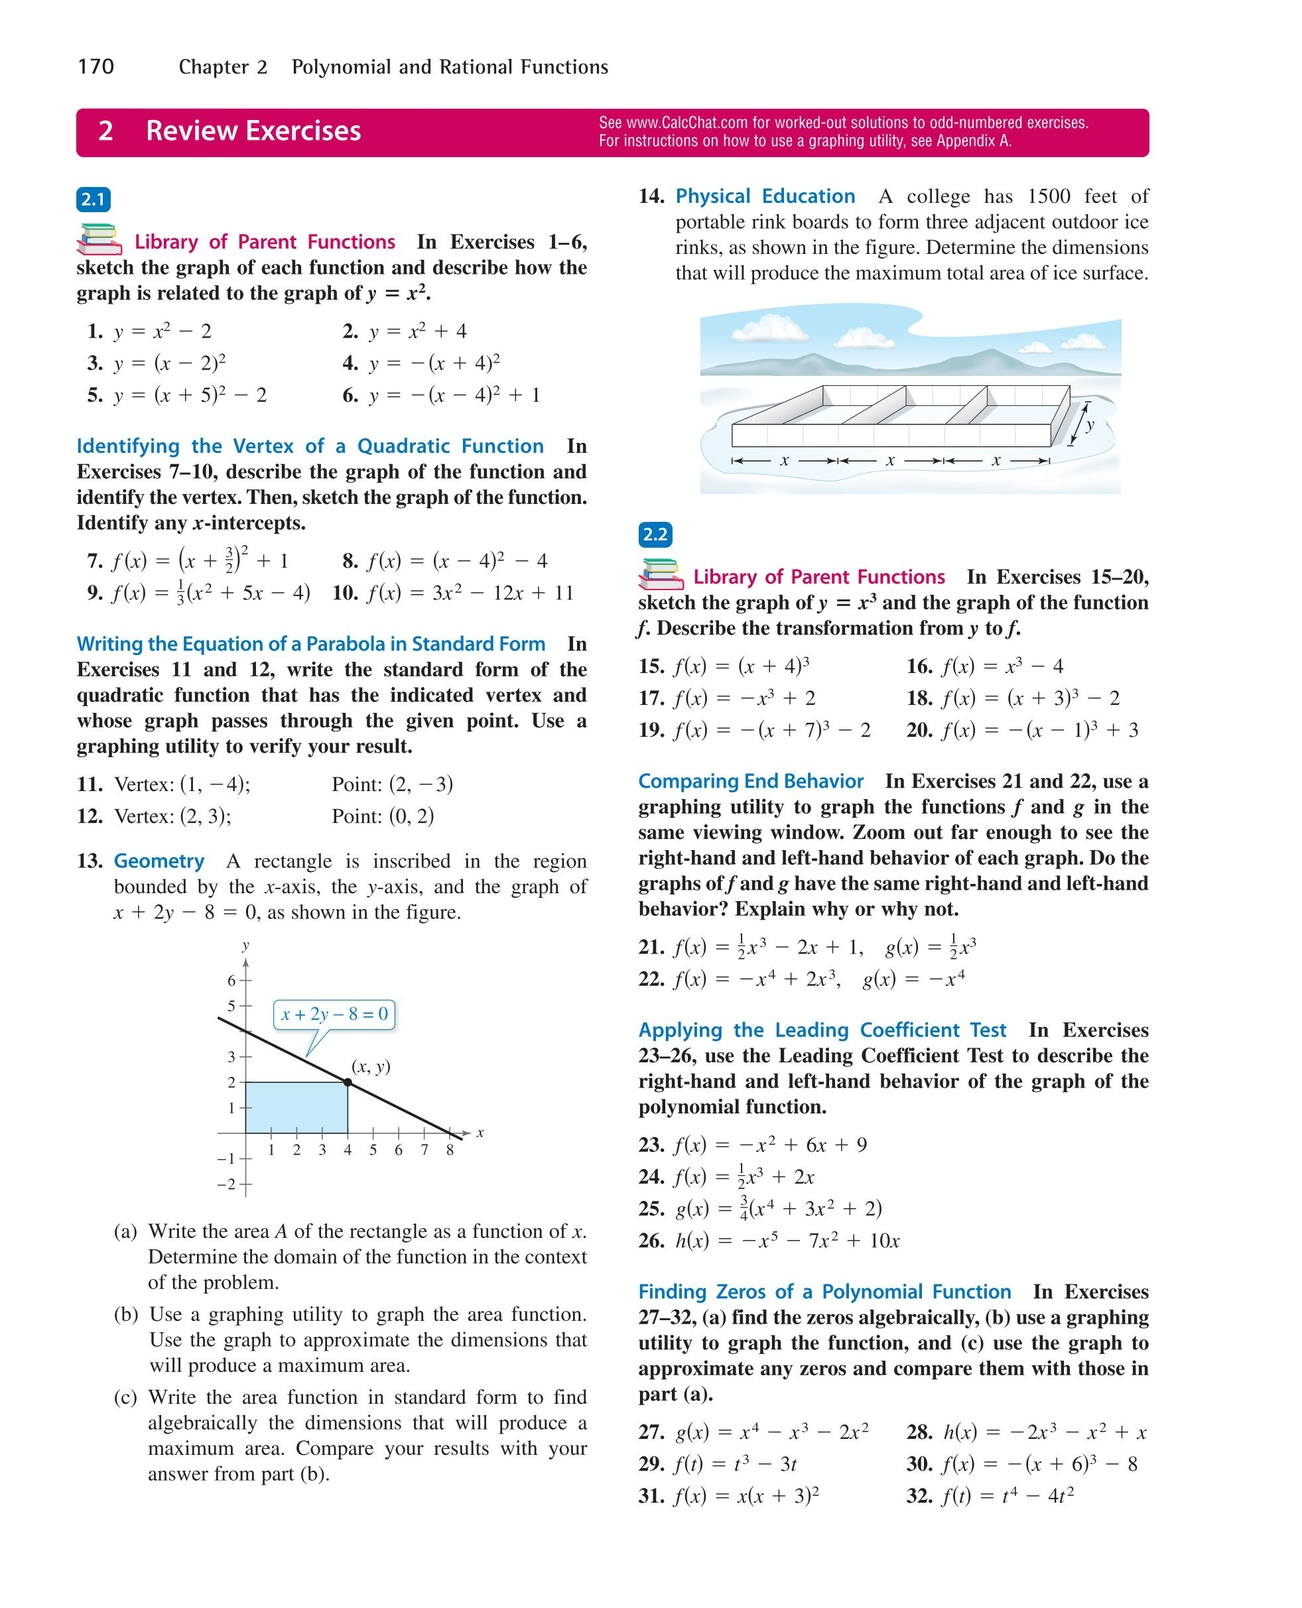 Precalculus with limits a graphing approach 170 171 precalculus with limits a graphing approach page 170 170 2 chapter 2 polynomial and rational functions see calcchat for worked out solutions falaconquin